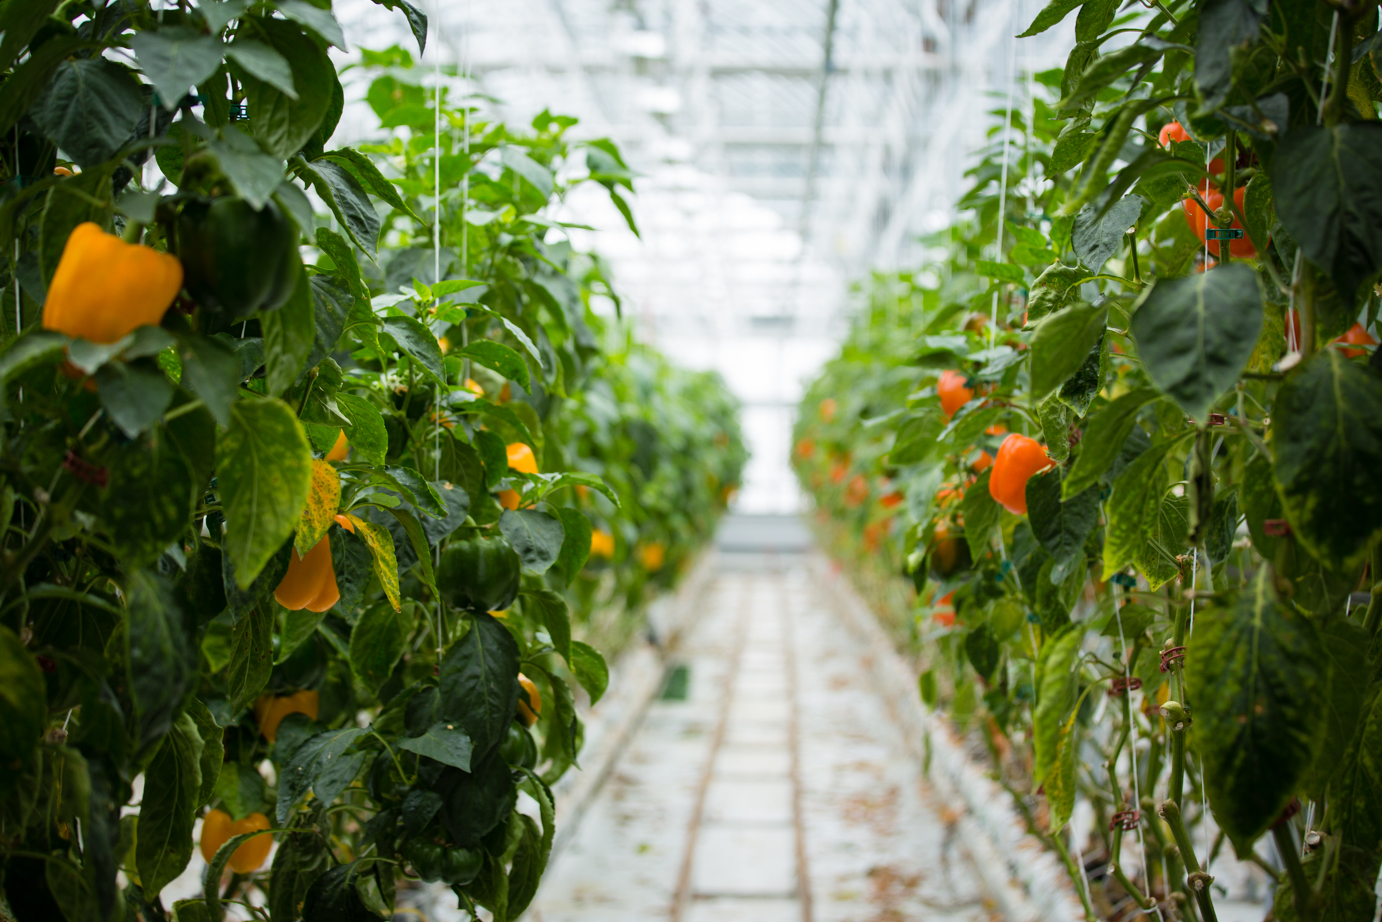 Lufa Farms Ahuntsic greenhouse